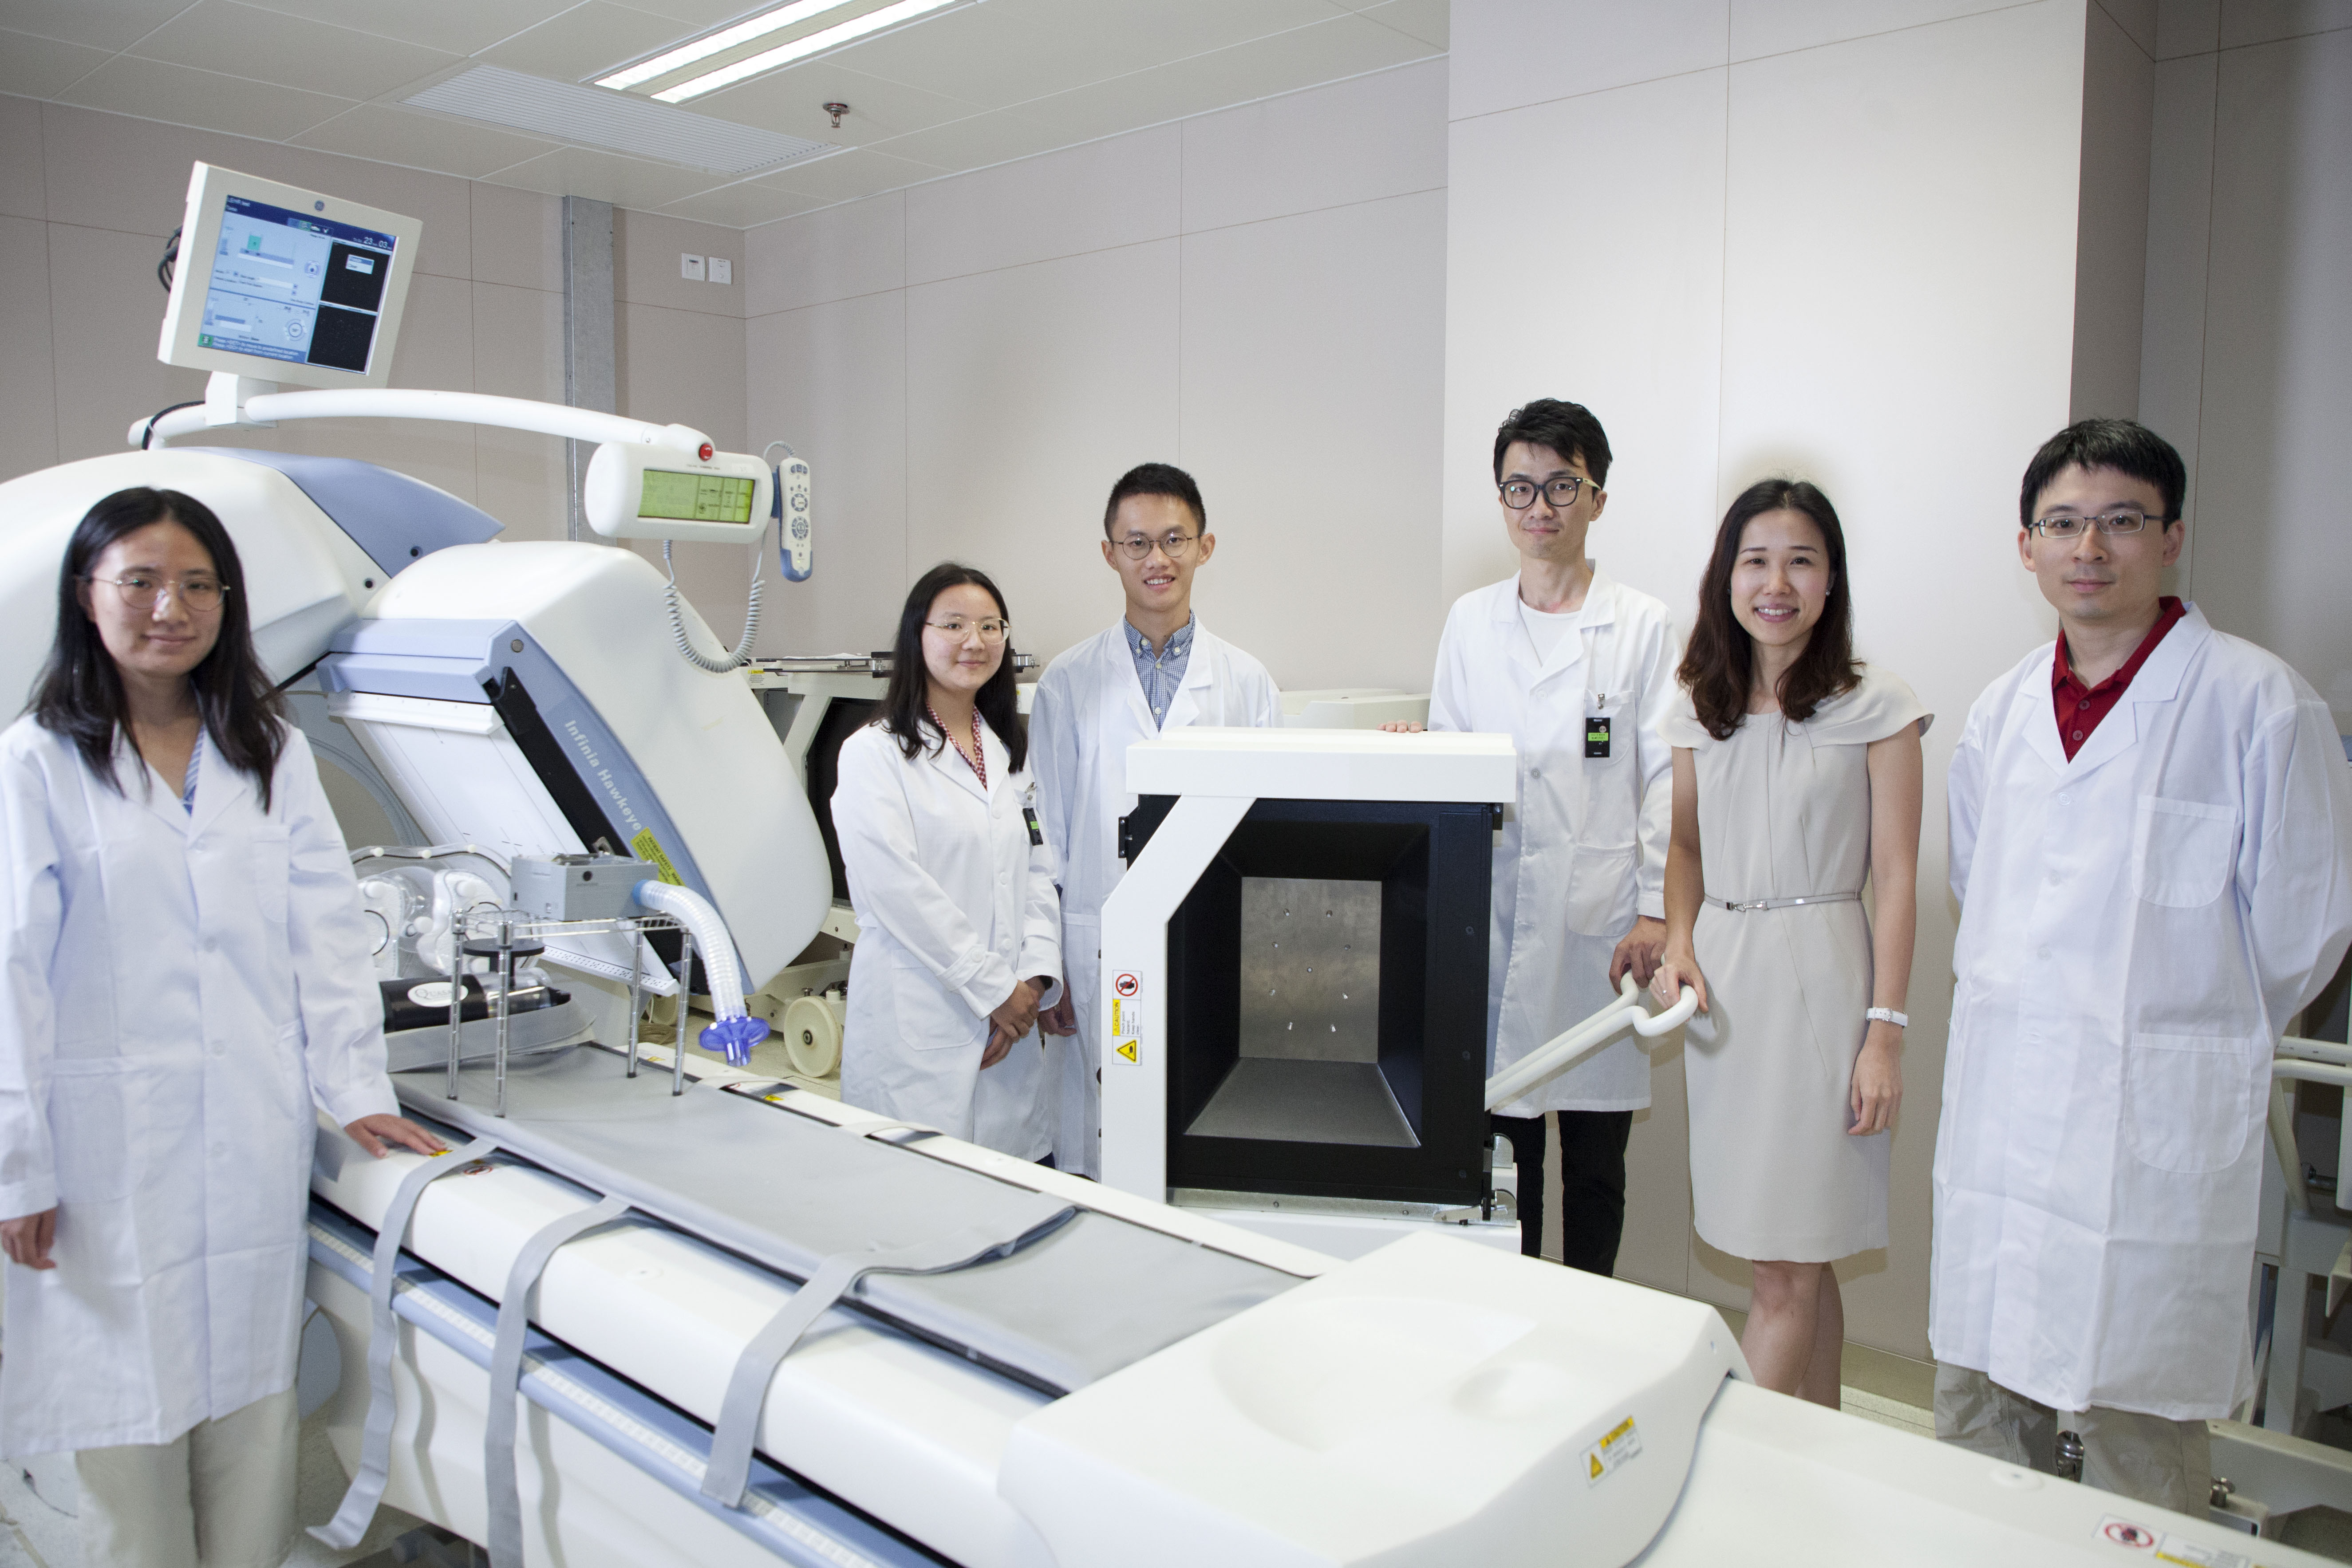 Prof Mok's research team focuses on the development of nuclear medical instrumentation, methods of medical imaging generation, and subsequent processing and analysis techniques.